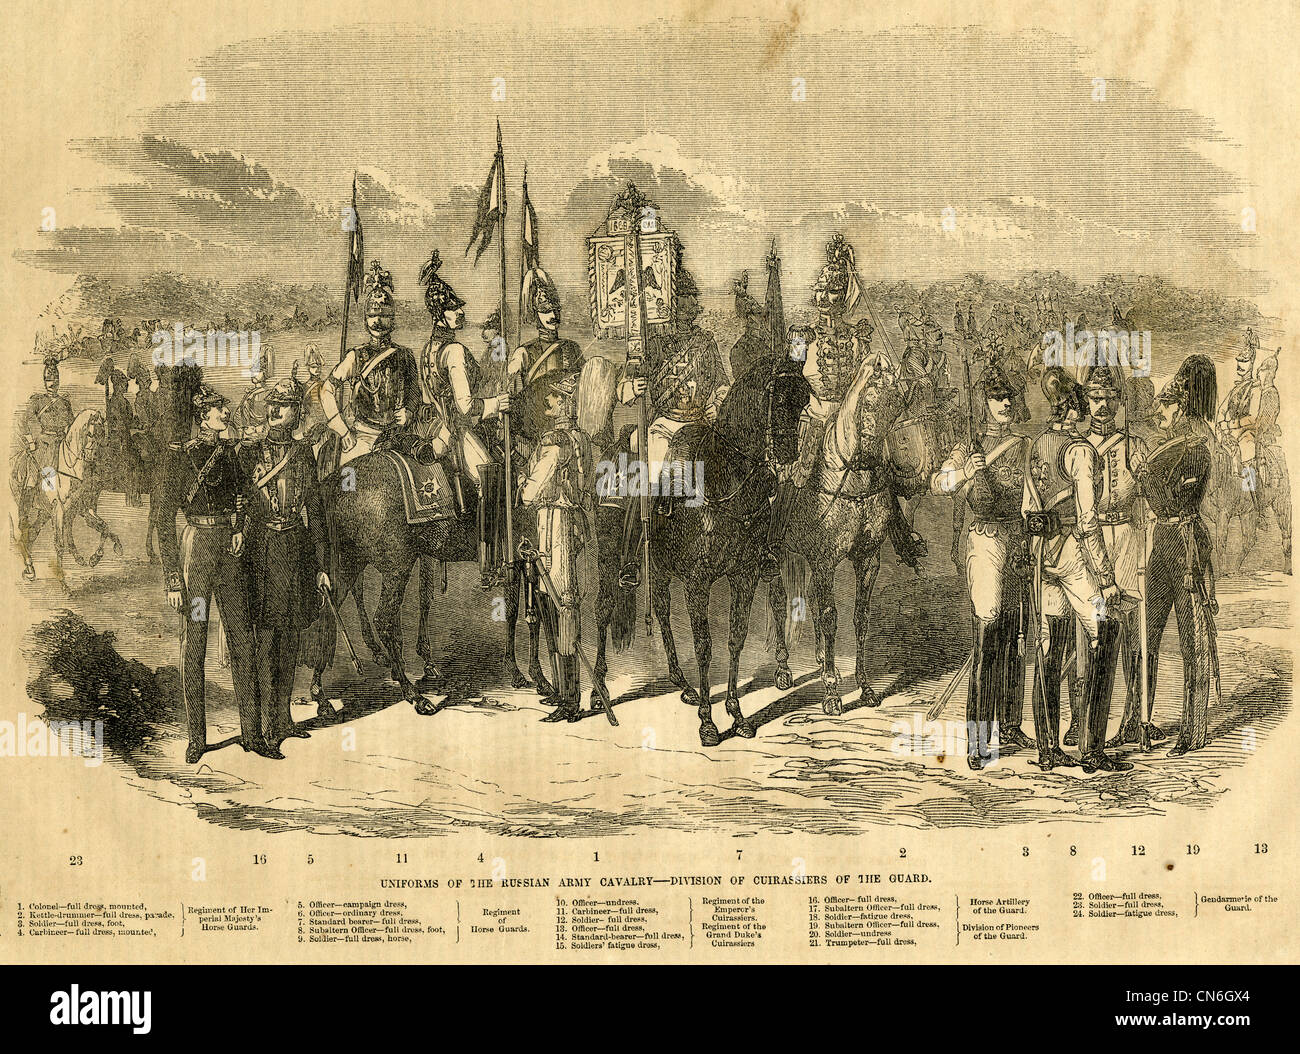 1854 engraving, Uniforms of the Russian Army Cavalry, Division of Cuirassiers of the Guard. - Stock Image